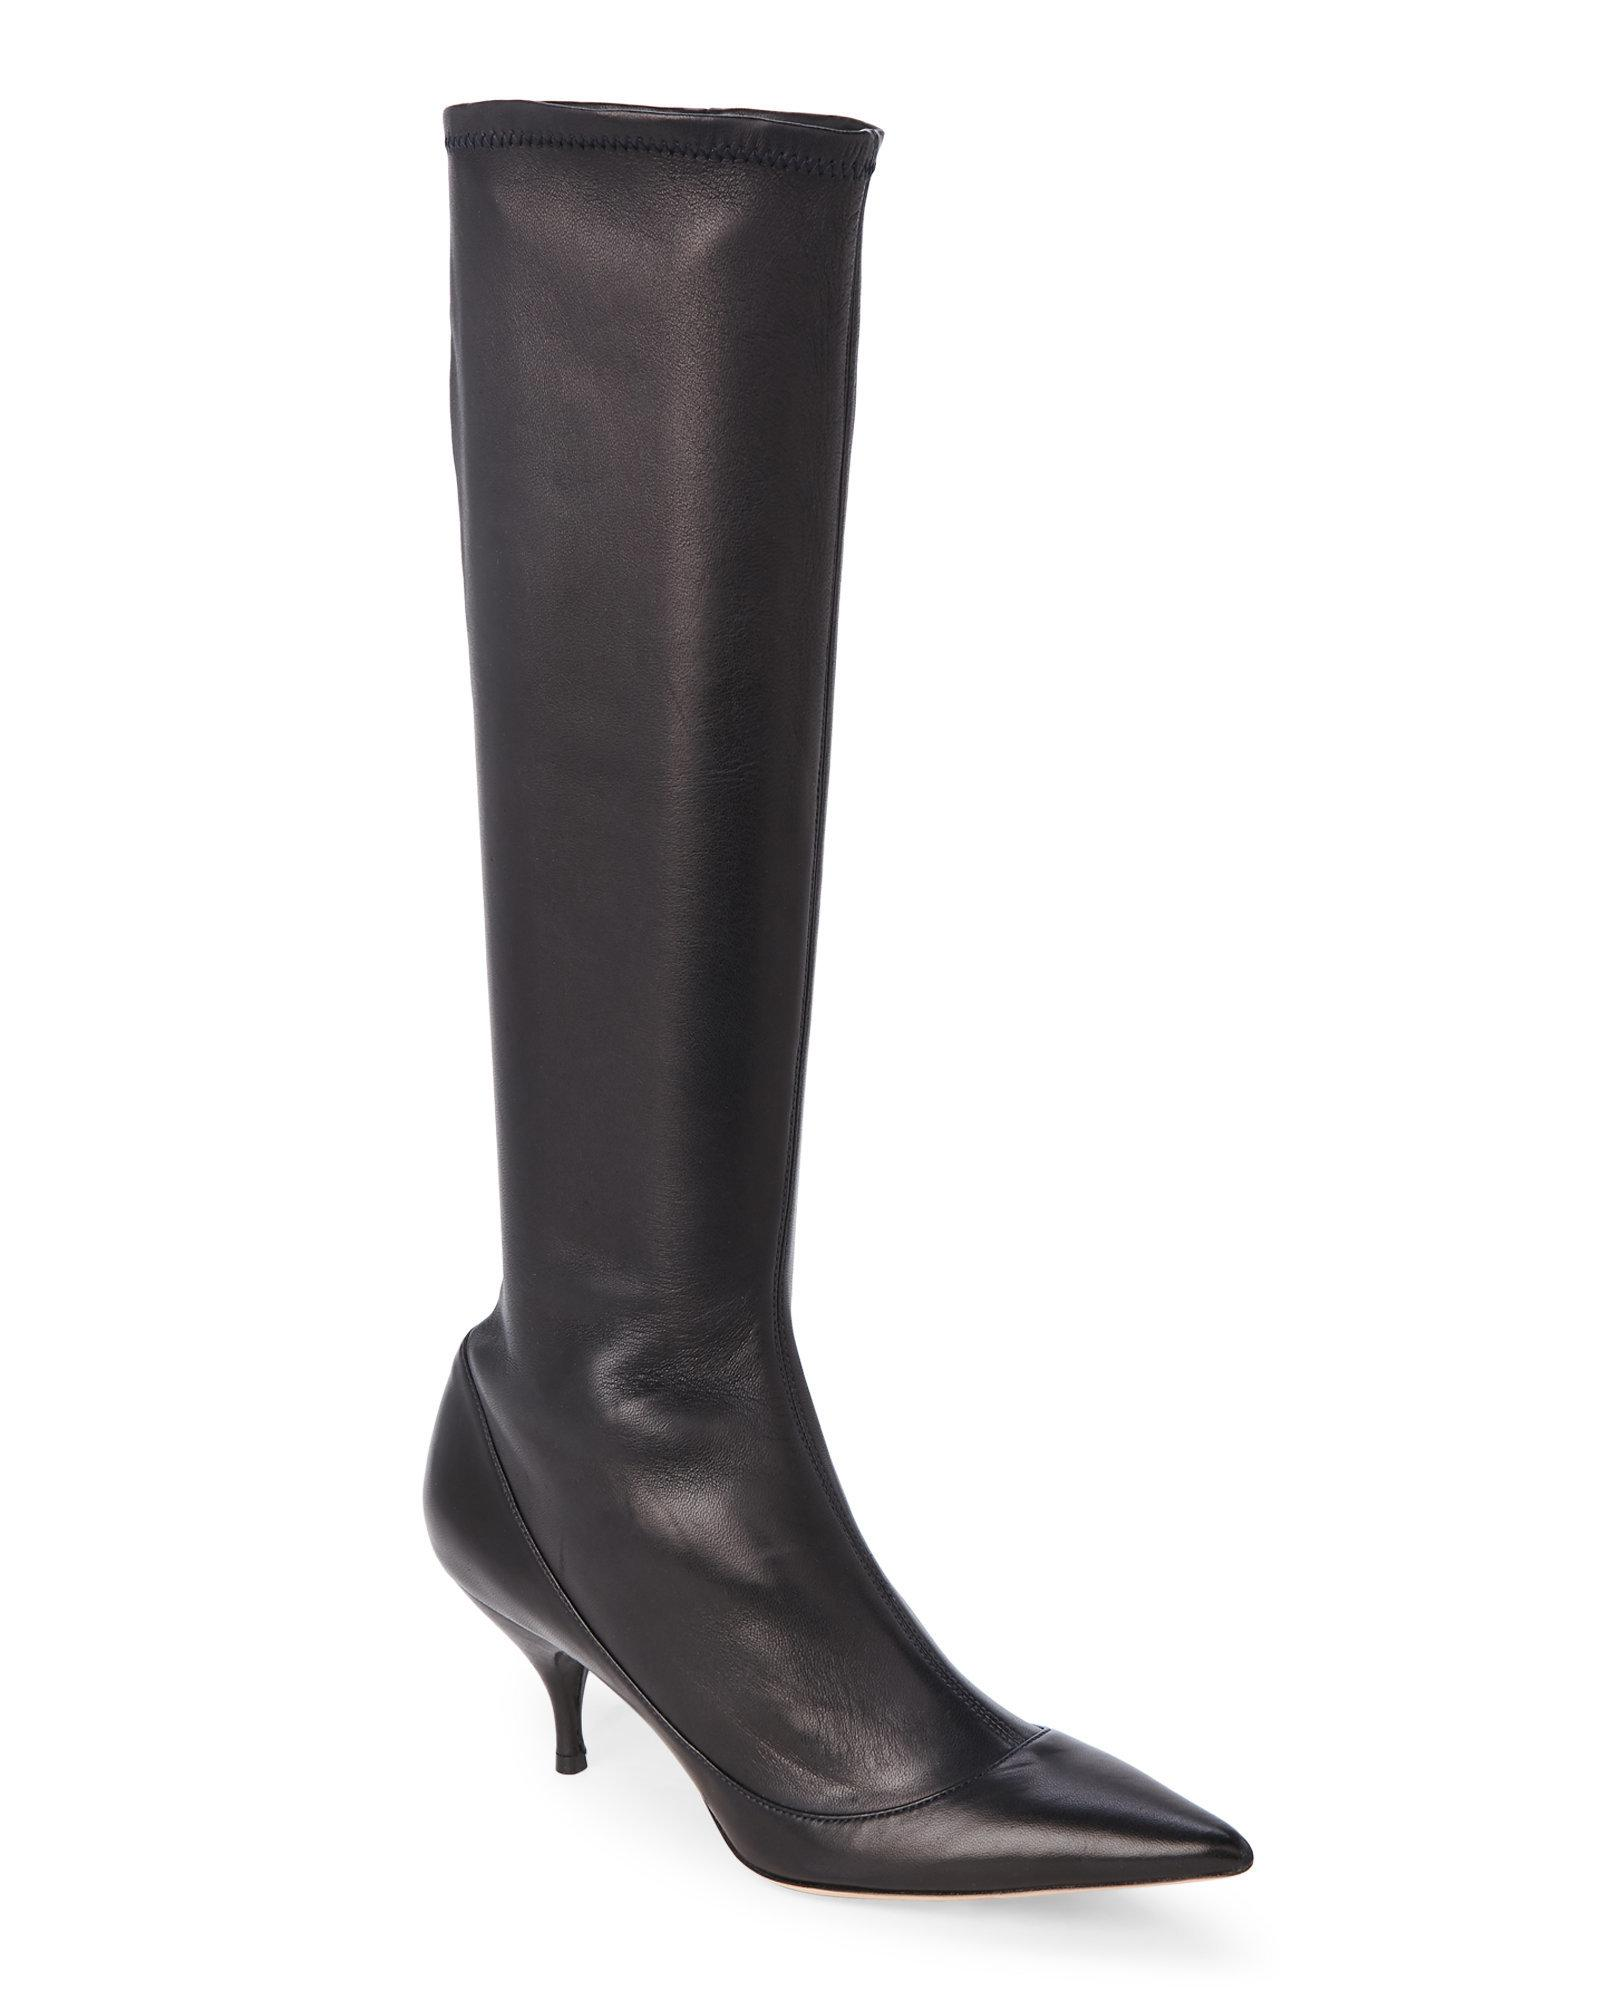 Nina Ricci Leather Knee-High Boots clearance shop for free shipping sneakernews buy cheap in China sale shop for fEVgSUSh